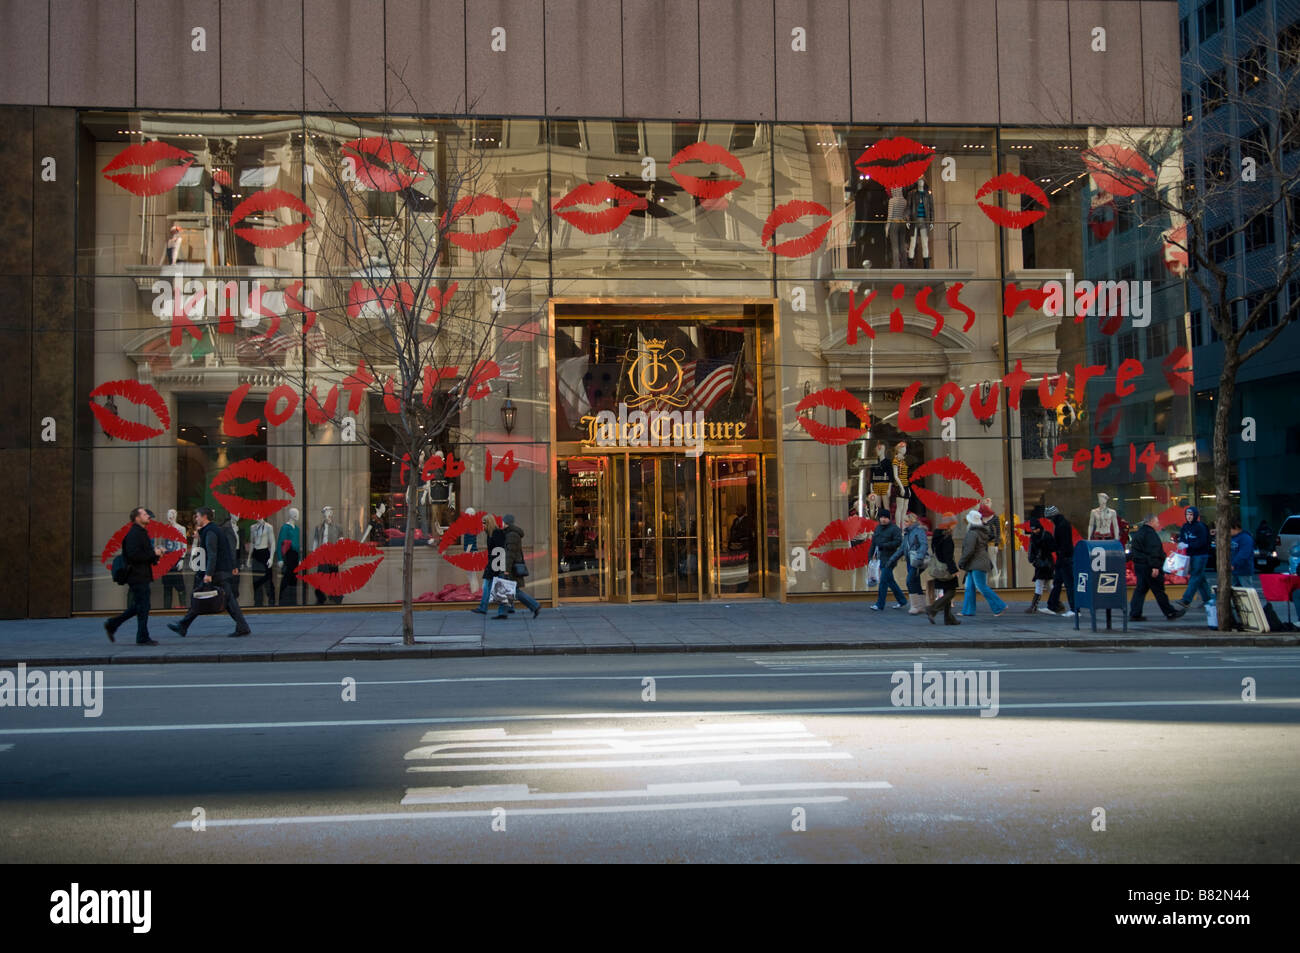 A Juicy Couture store on Fifth Avenue in New York - Stock Image